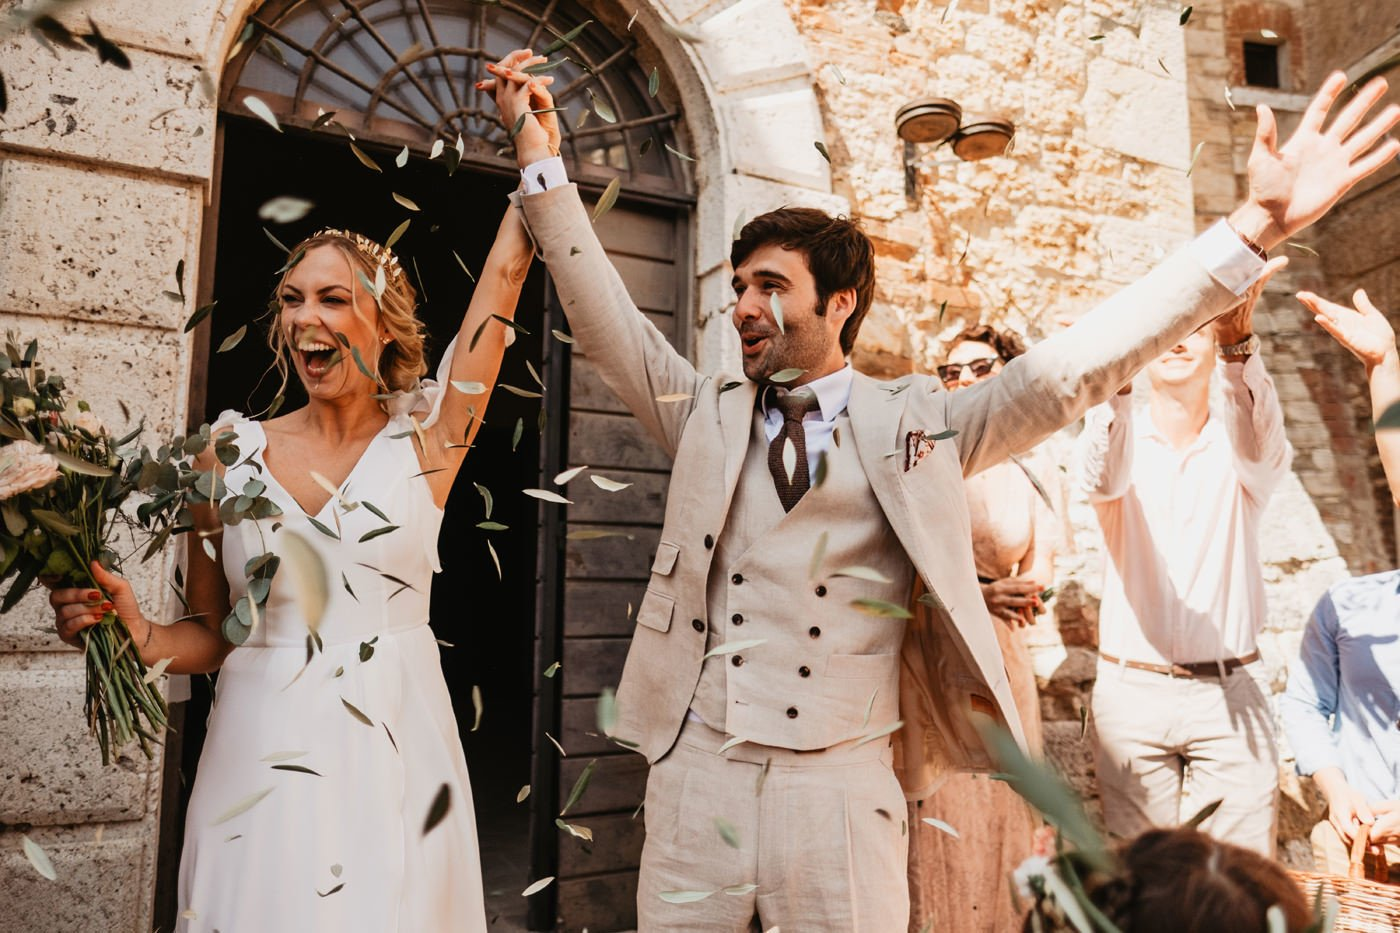 elopement tuscany wedding - just married couple